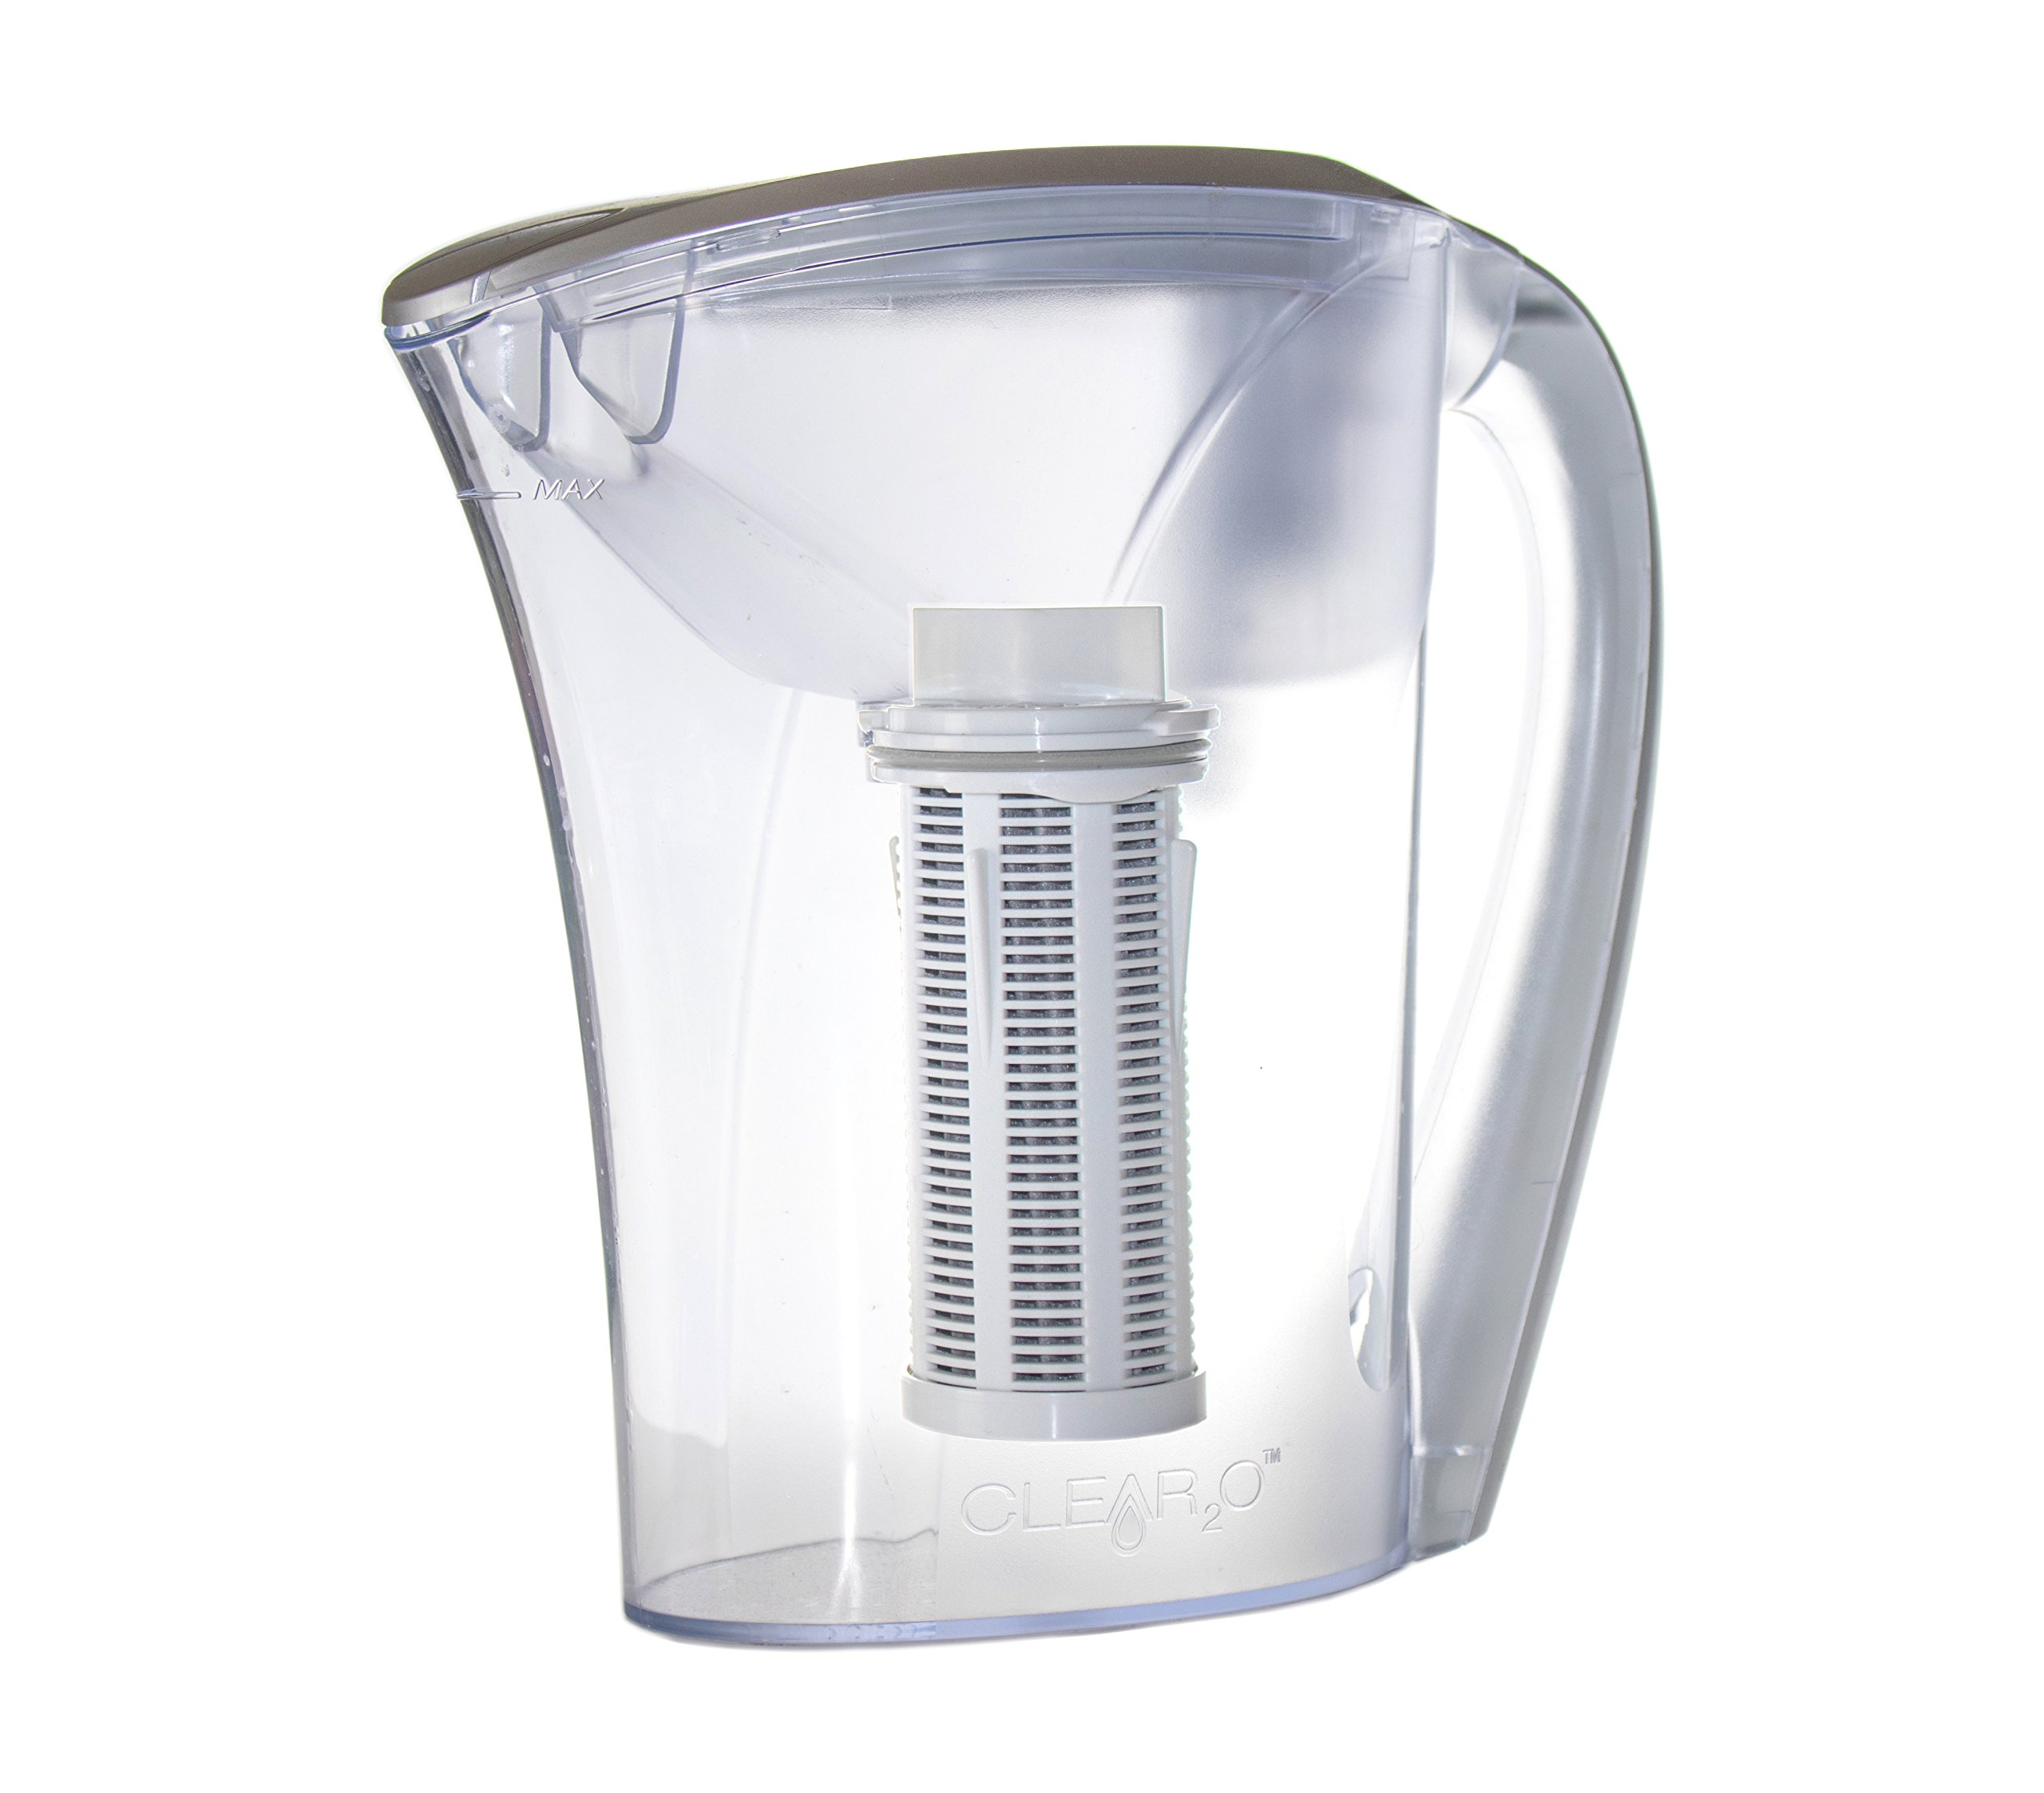 Clear2O Grp200 Advanced Gravity Water Filter Pitcher Designed With 100% Natural Coconut Carbon, 48 Oz